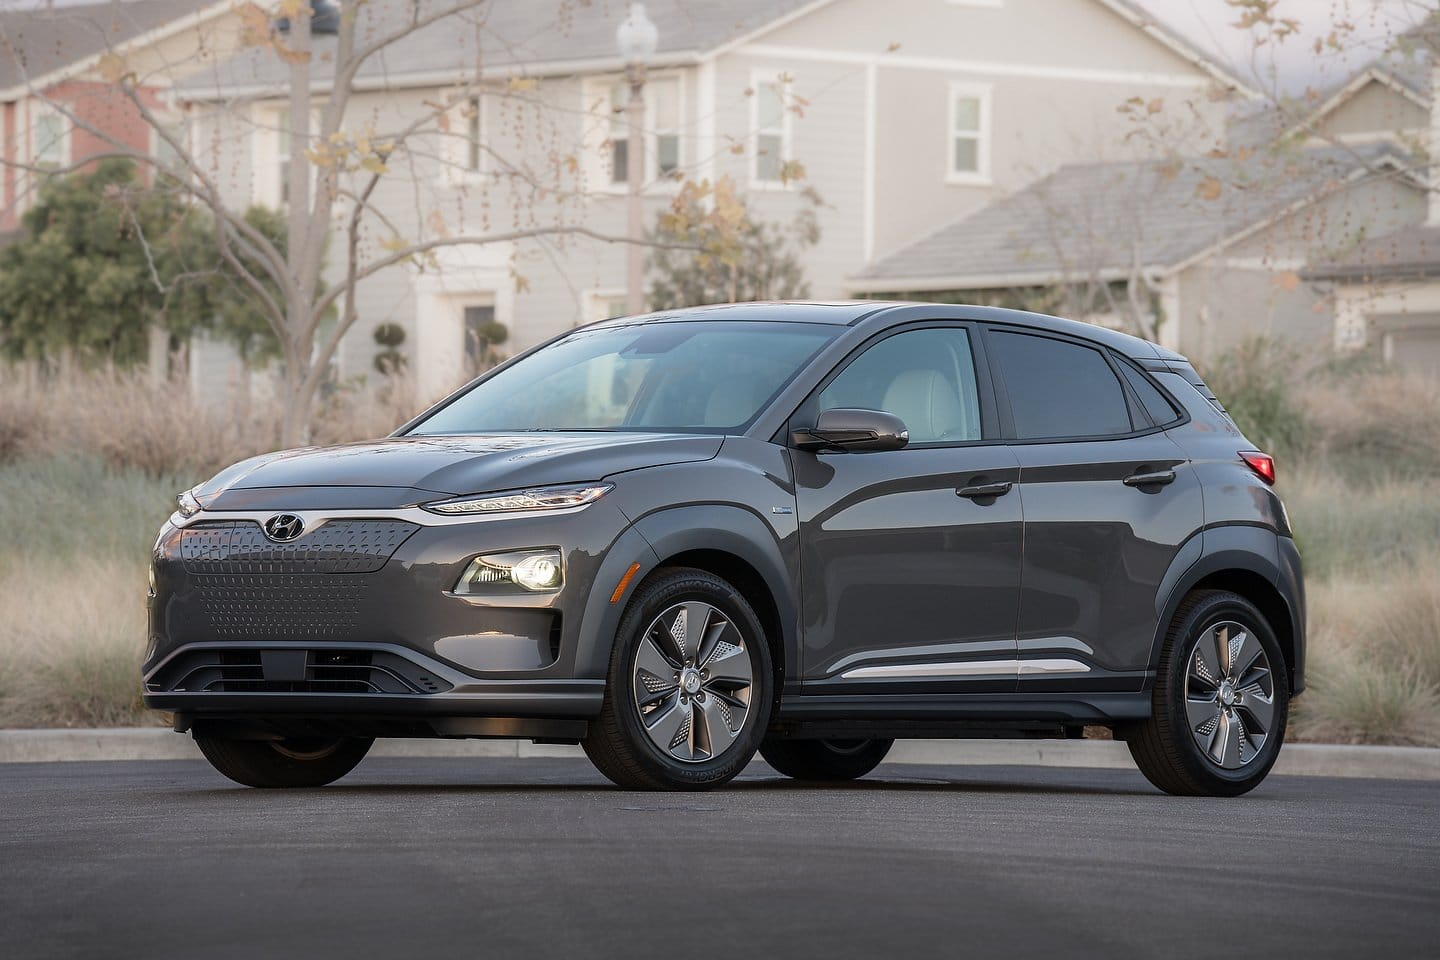 2019 Hyundai Kona Electric IZEV Program